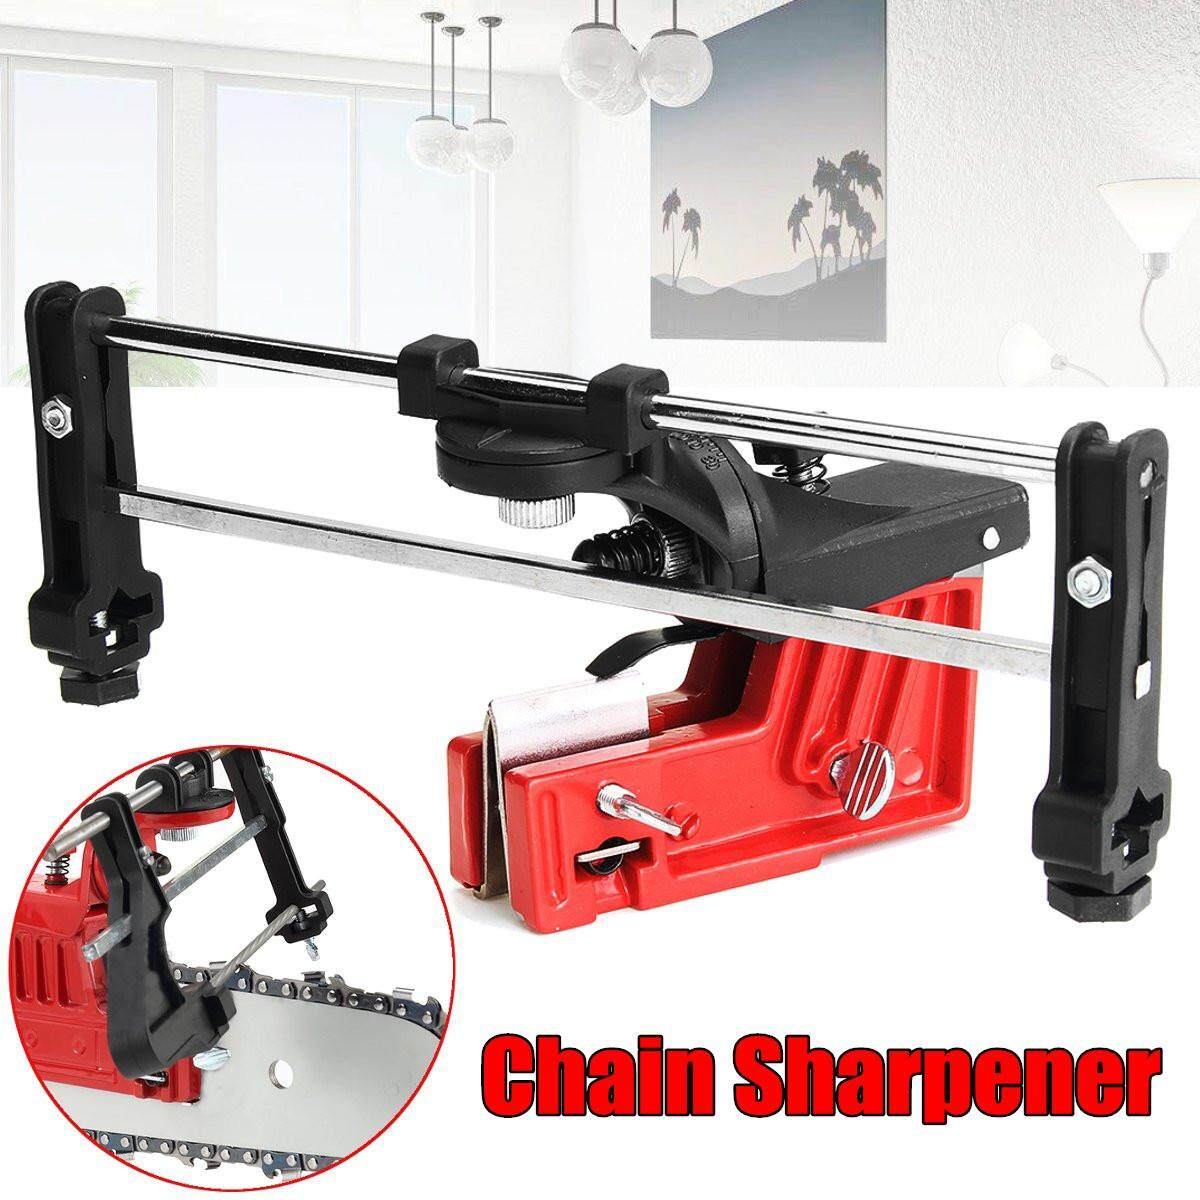 Professional Bar Mounted Pro Sharpener Chainsaw Saw Chain Grinder Filing Guide - intl